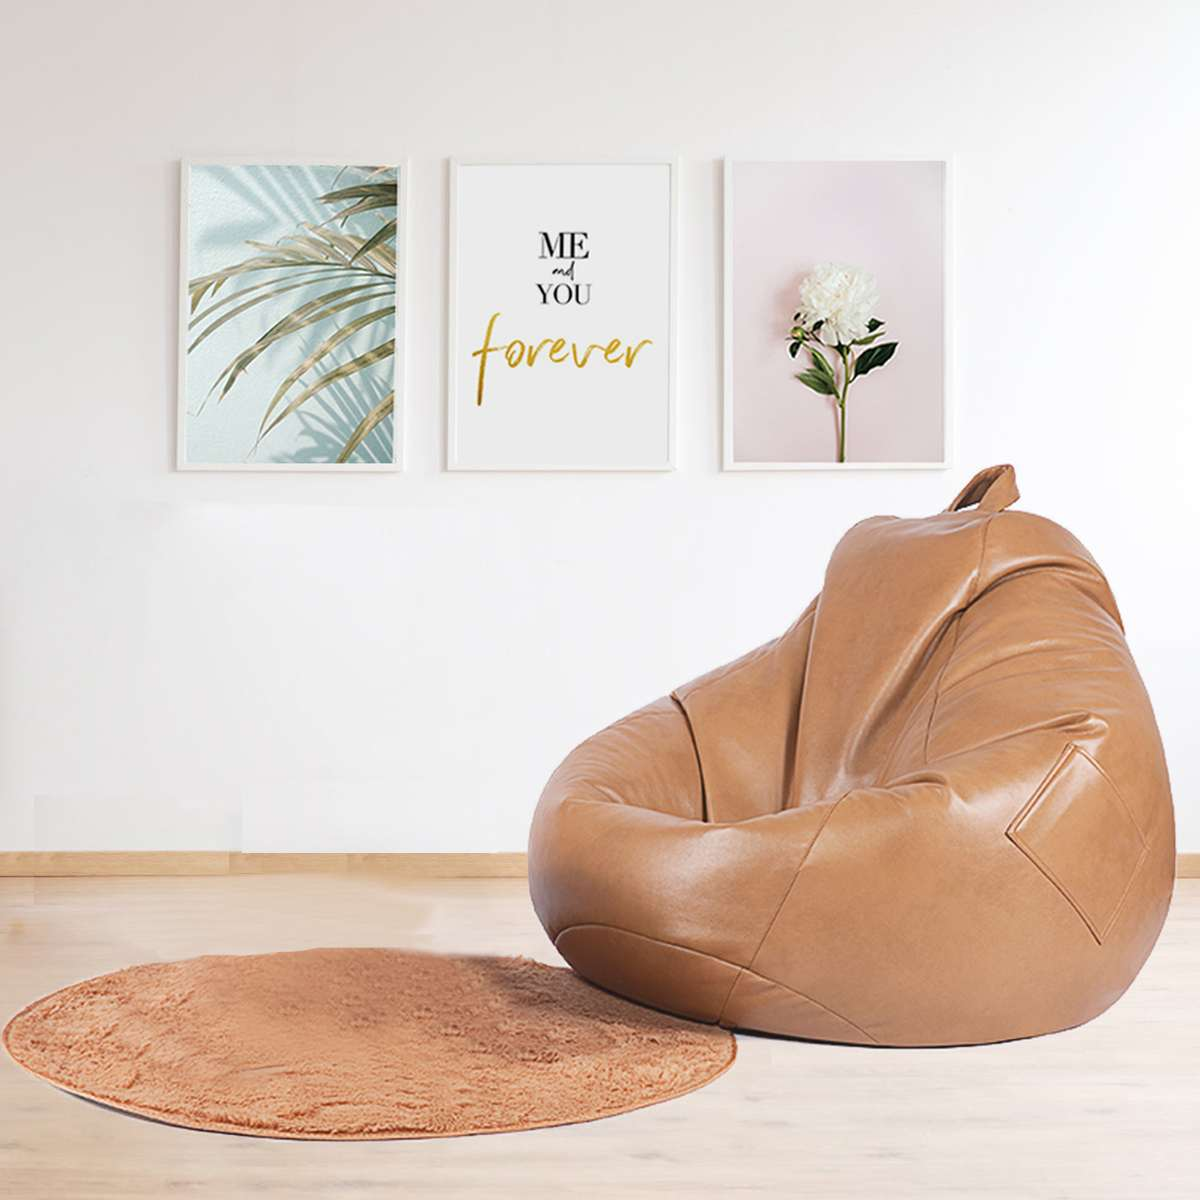 PU BeanBag Sofas Cover Chairs Without Filler Linen Leather Lounger Seat Bean Bag Puff Asiento Couch Tatami Living Room Furniture